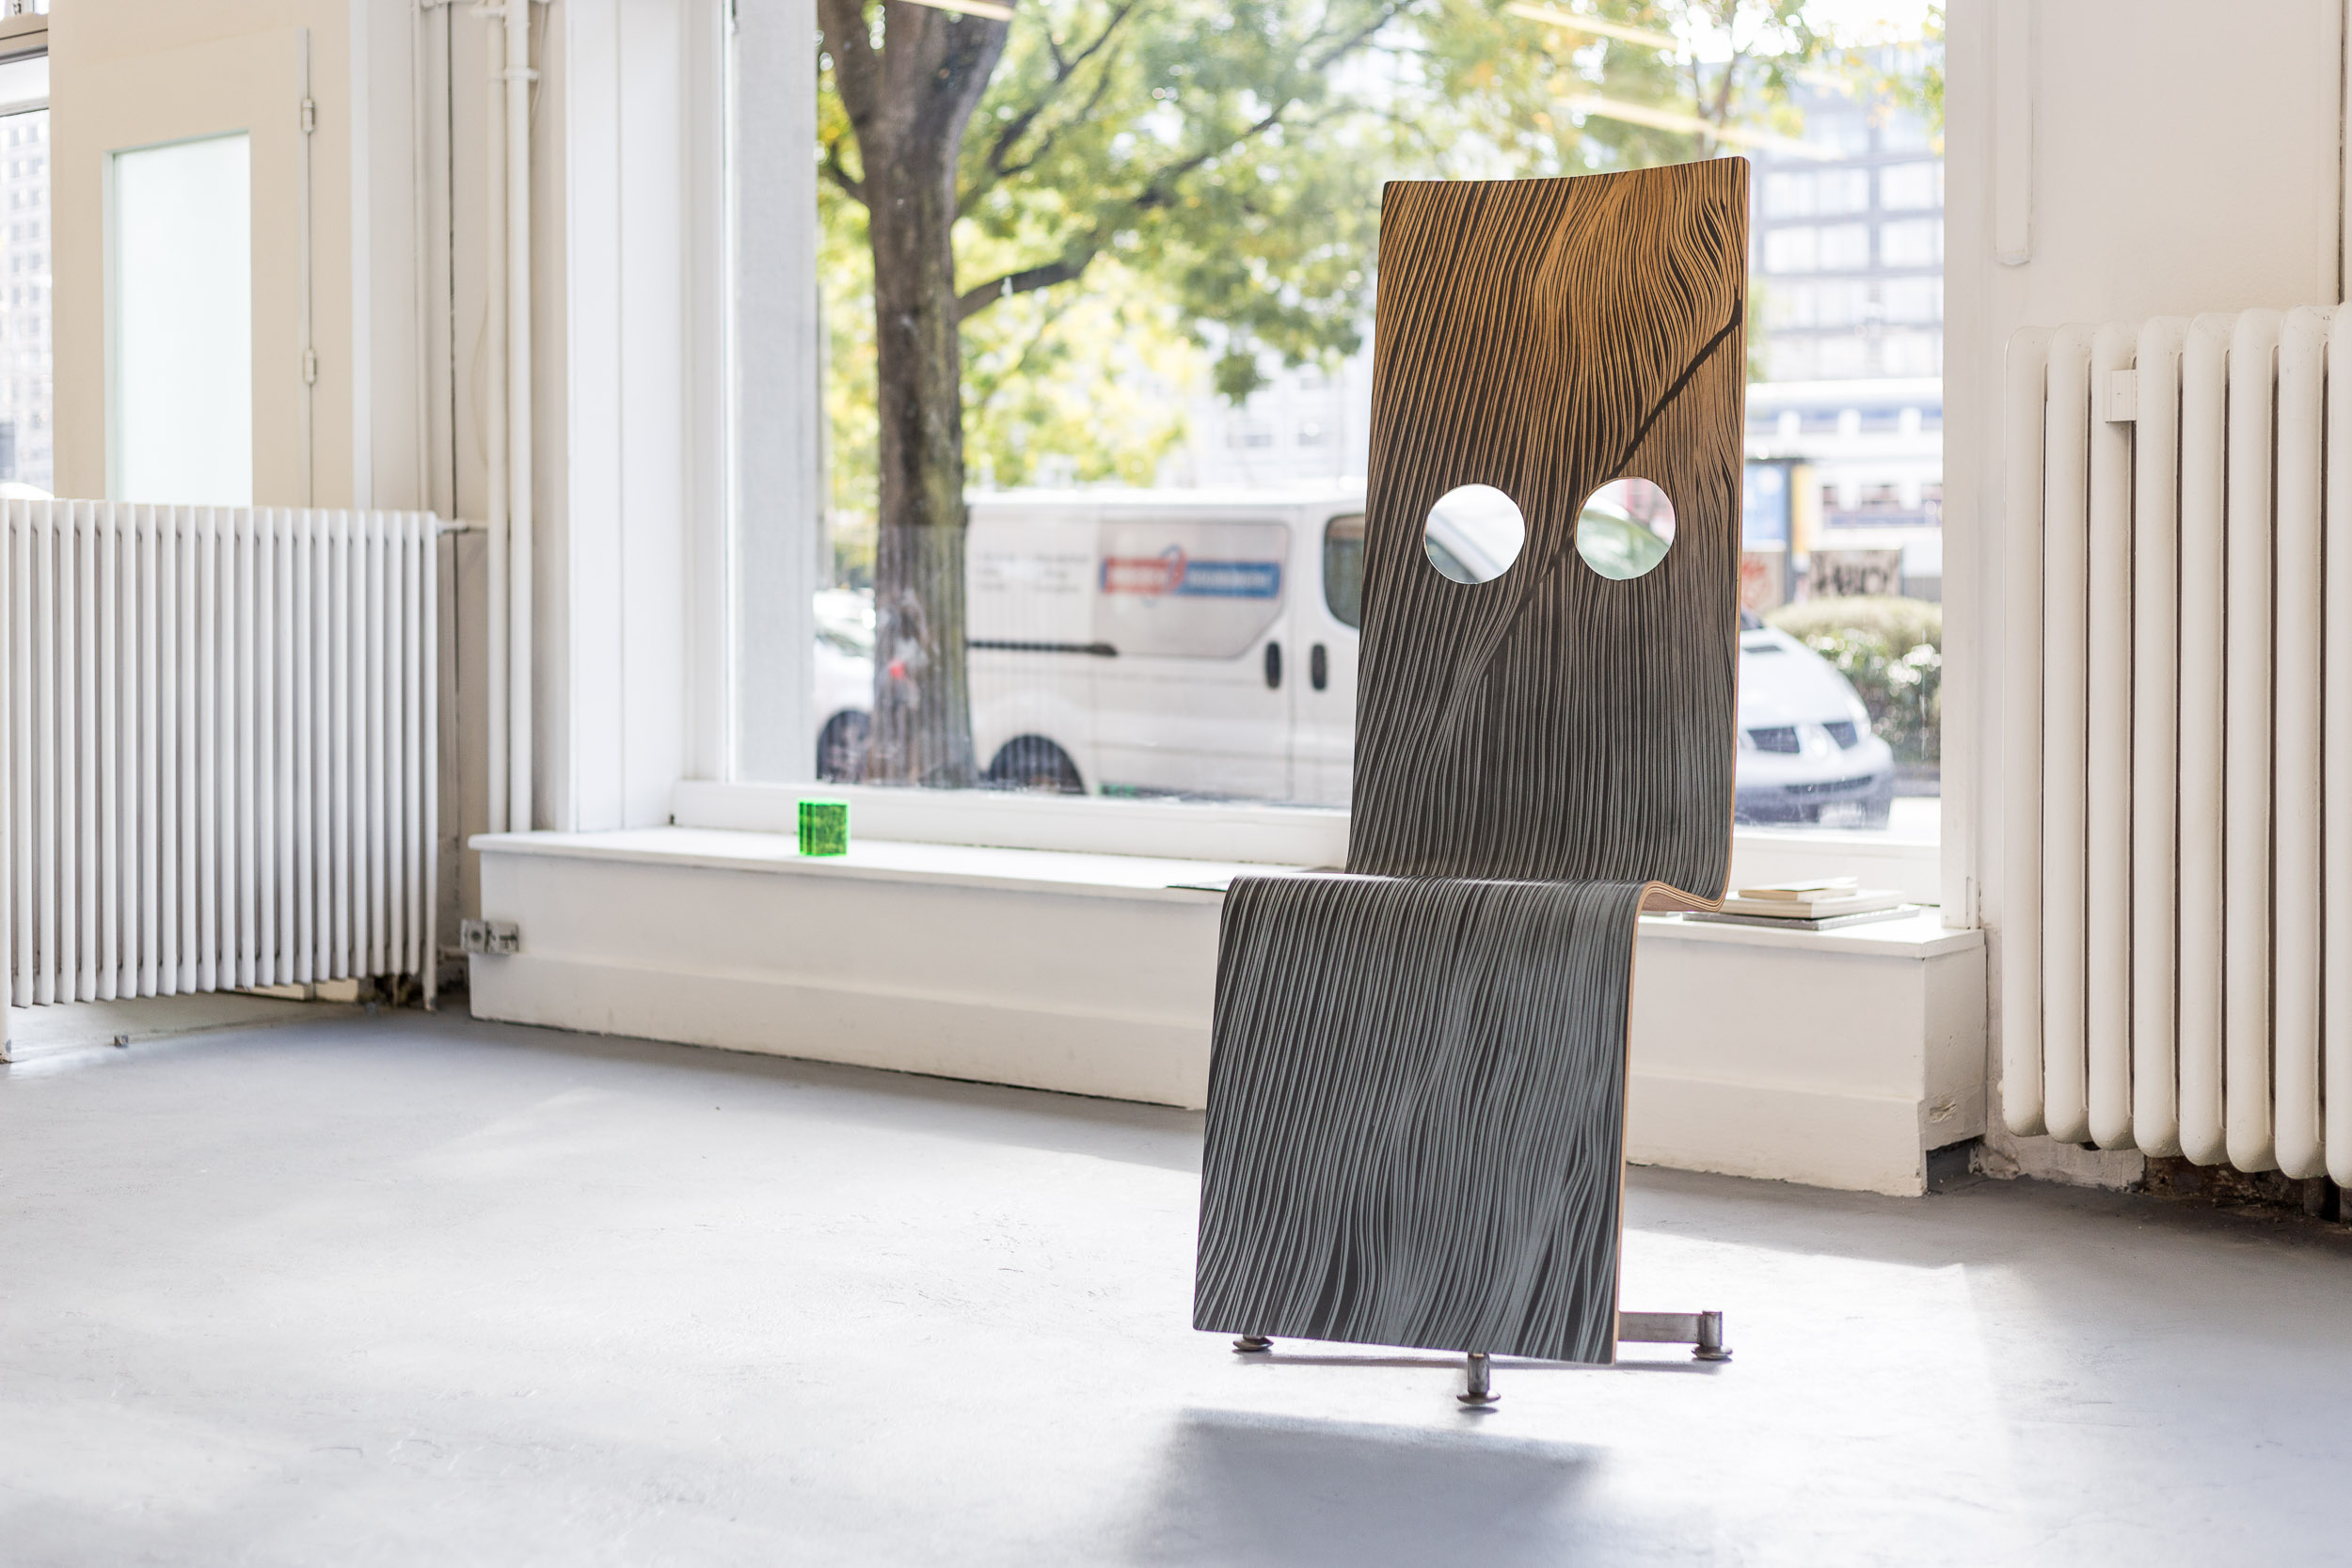 Fiona Banner,  Pinstripe Chair , 2015, graphite, vinyl, plywood, chair base, 148 x 52 x 50 cm  Photo: Kilian Bannwart